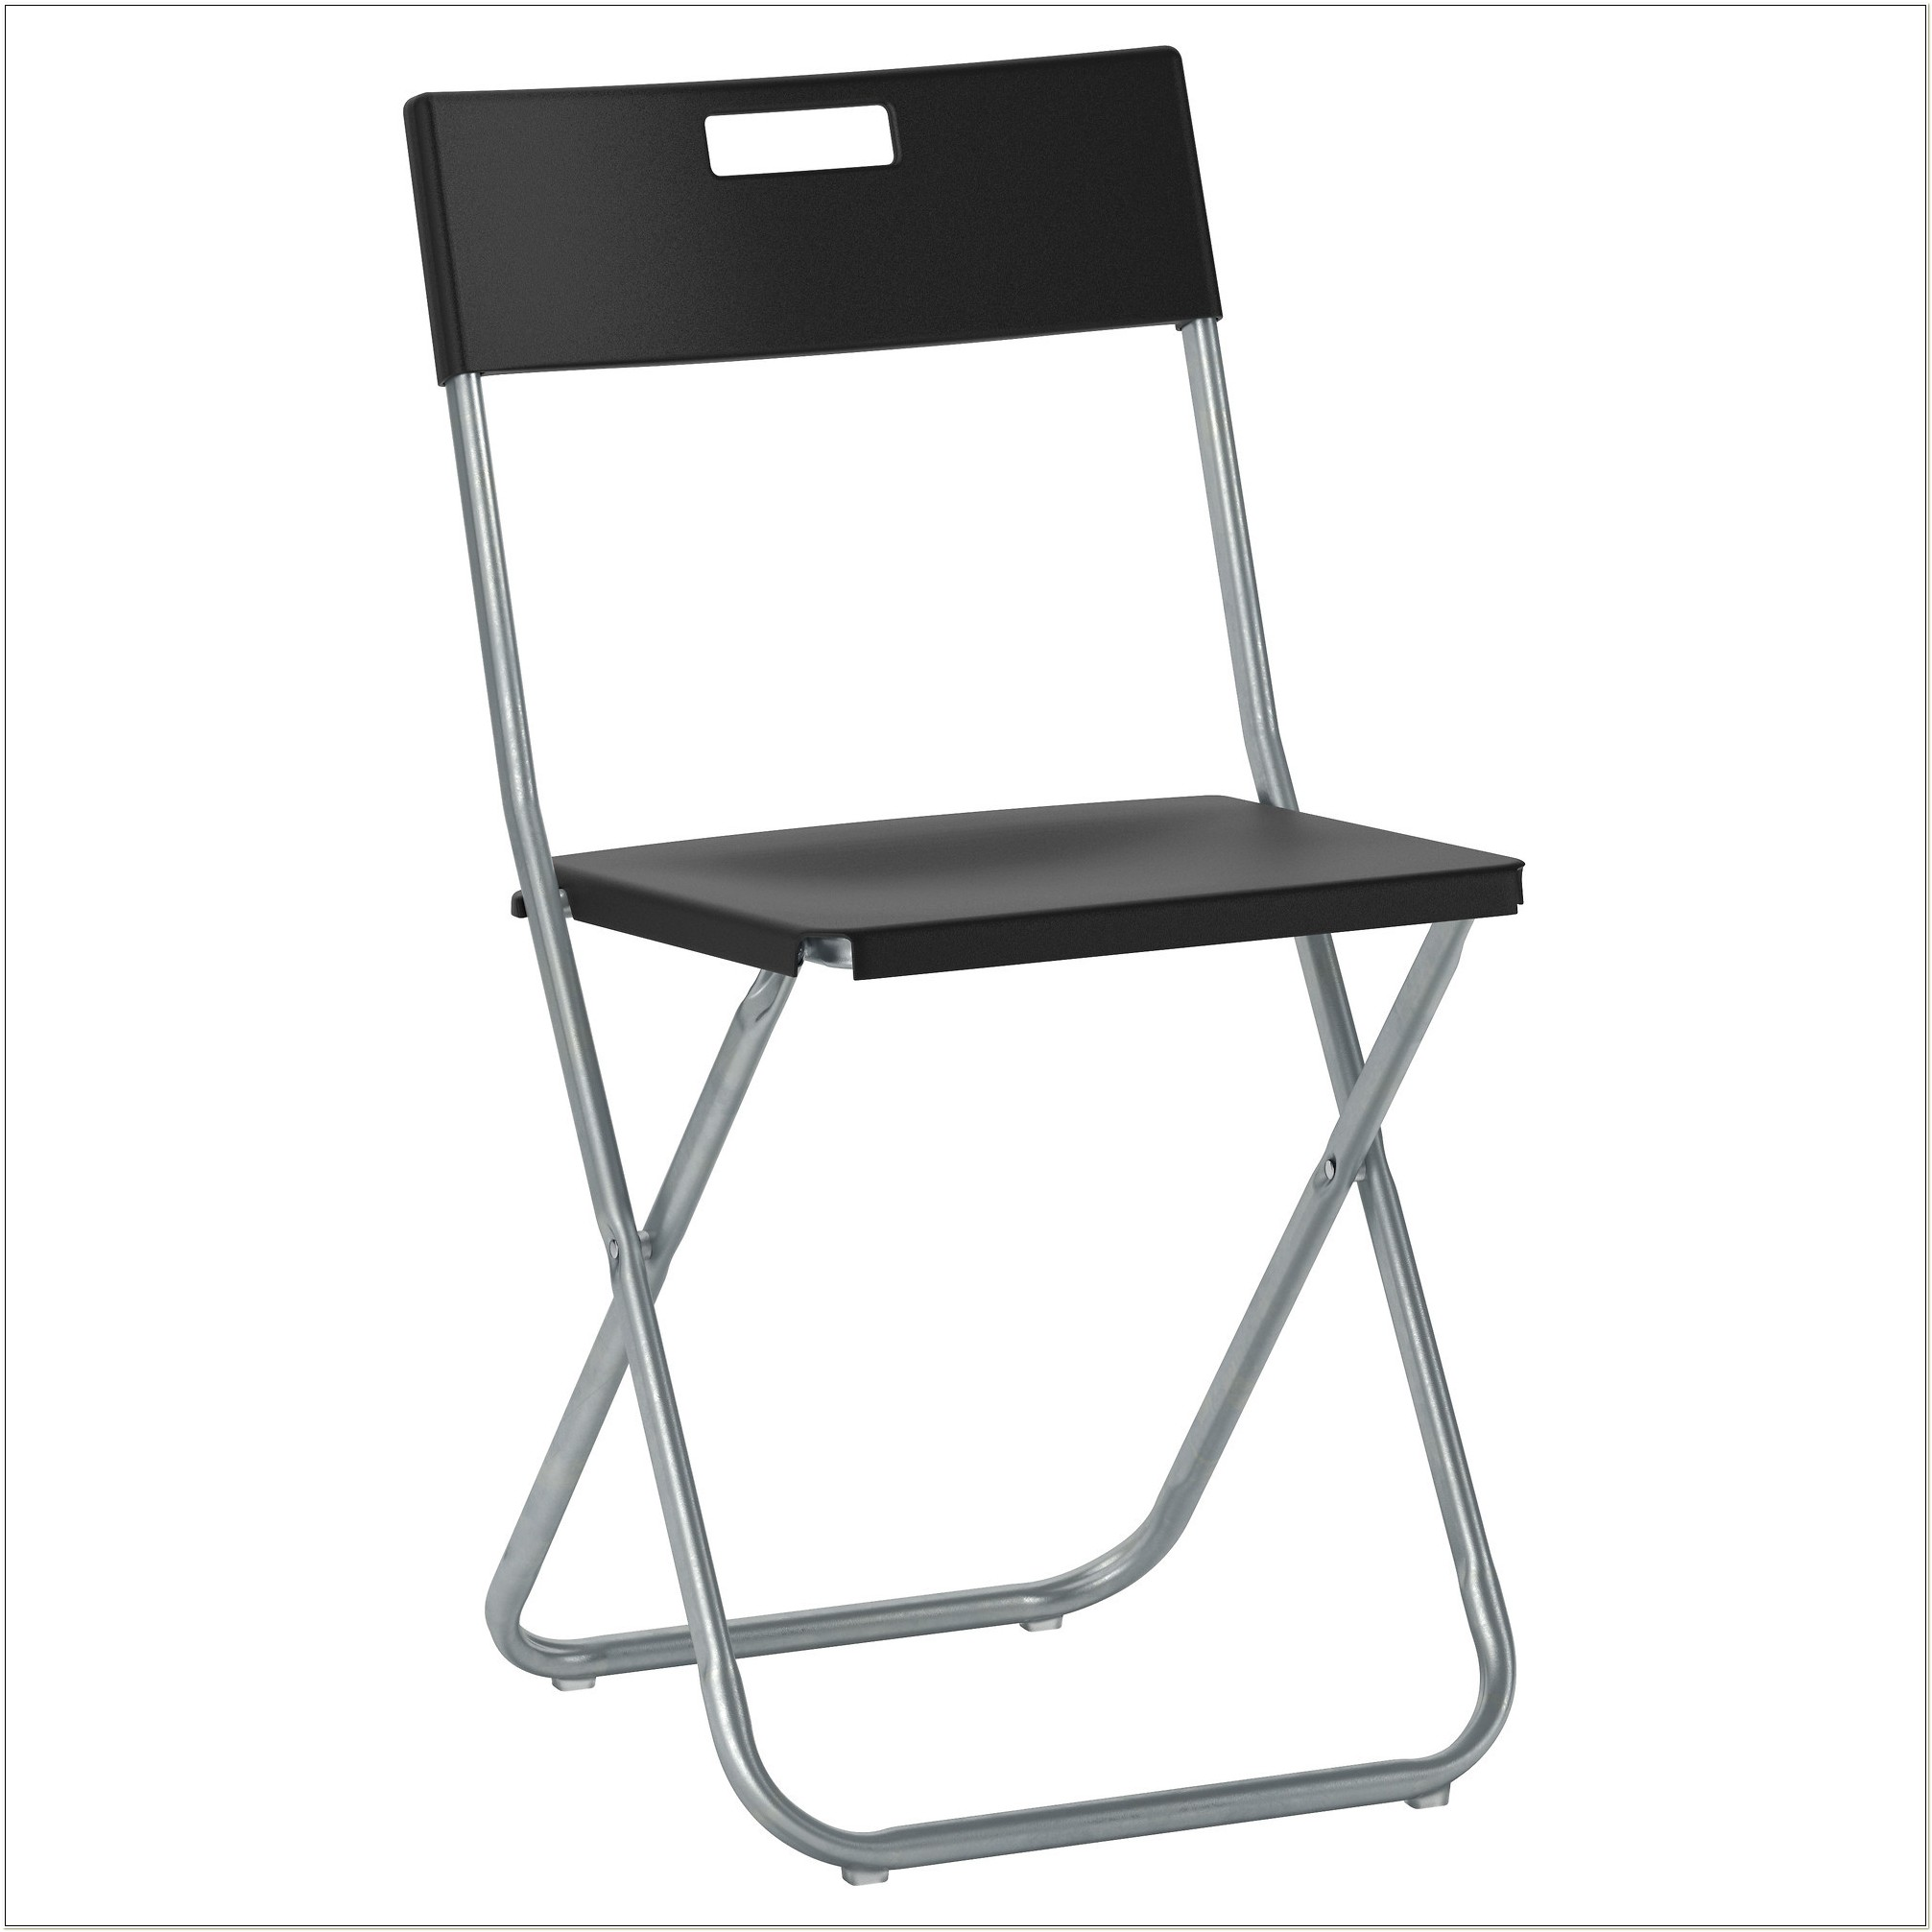 Ikea Plastic Fold Up Chairs